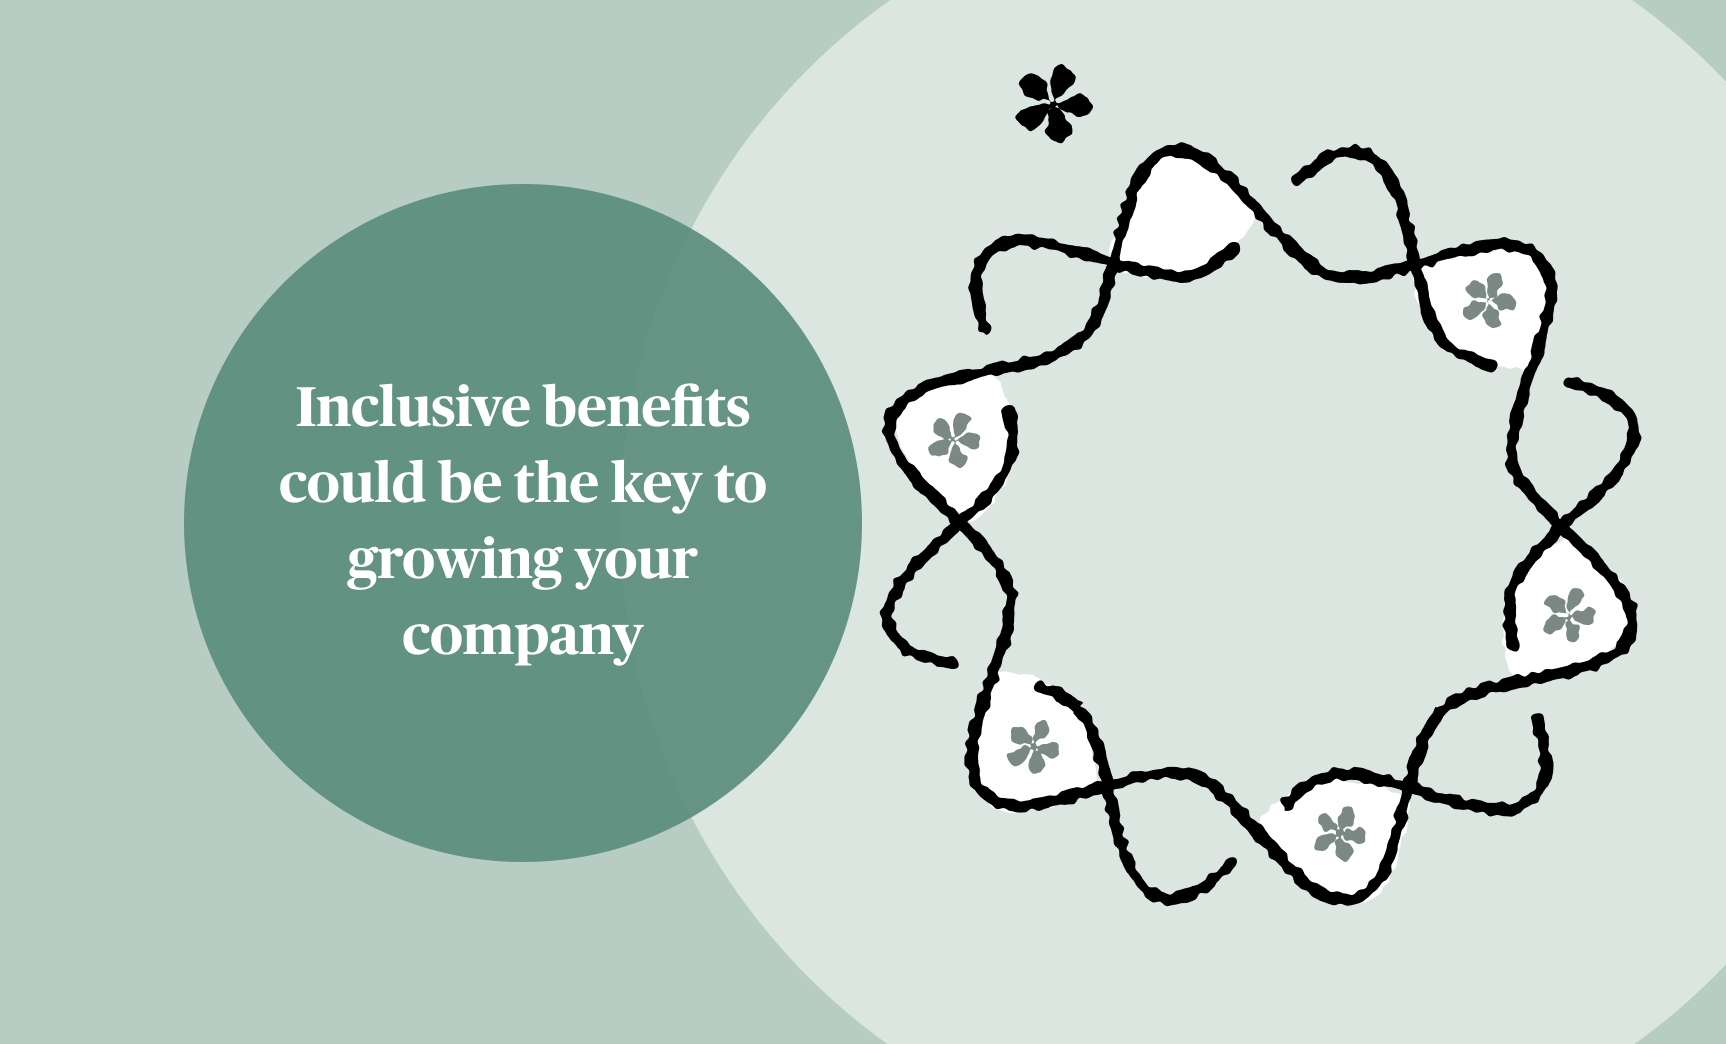 Inclusive benefits could be the key to growing your company